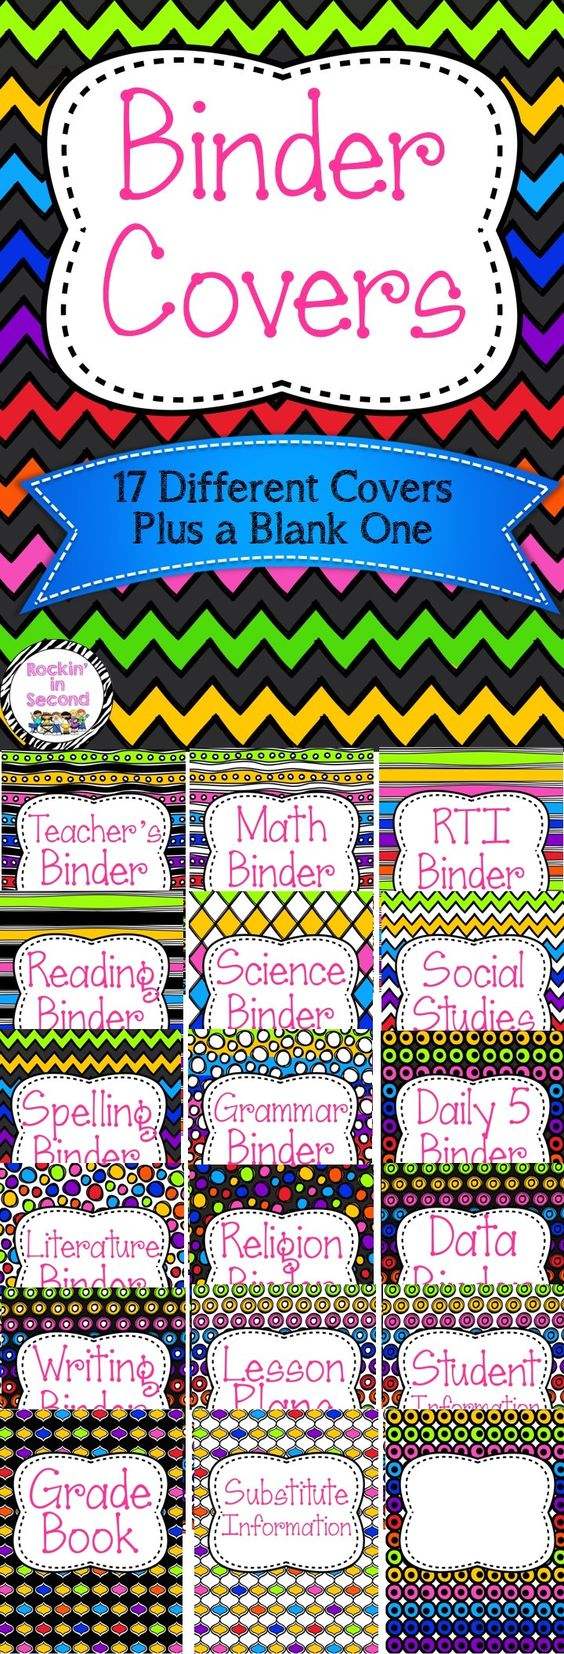 How To Make A Rainbow Book Cover ~ Rainbow teacher binder covers literature follow me and